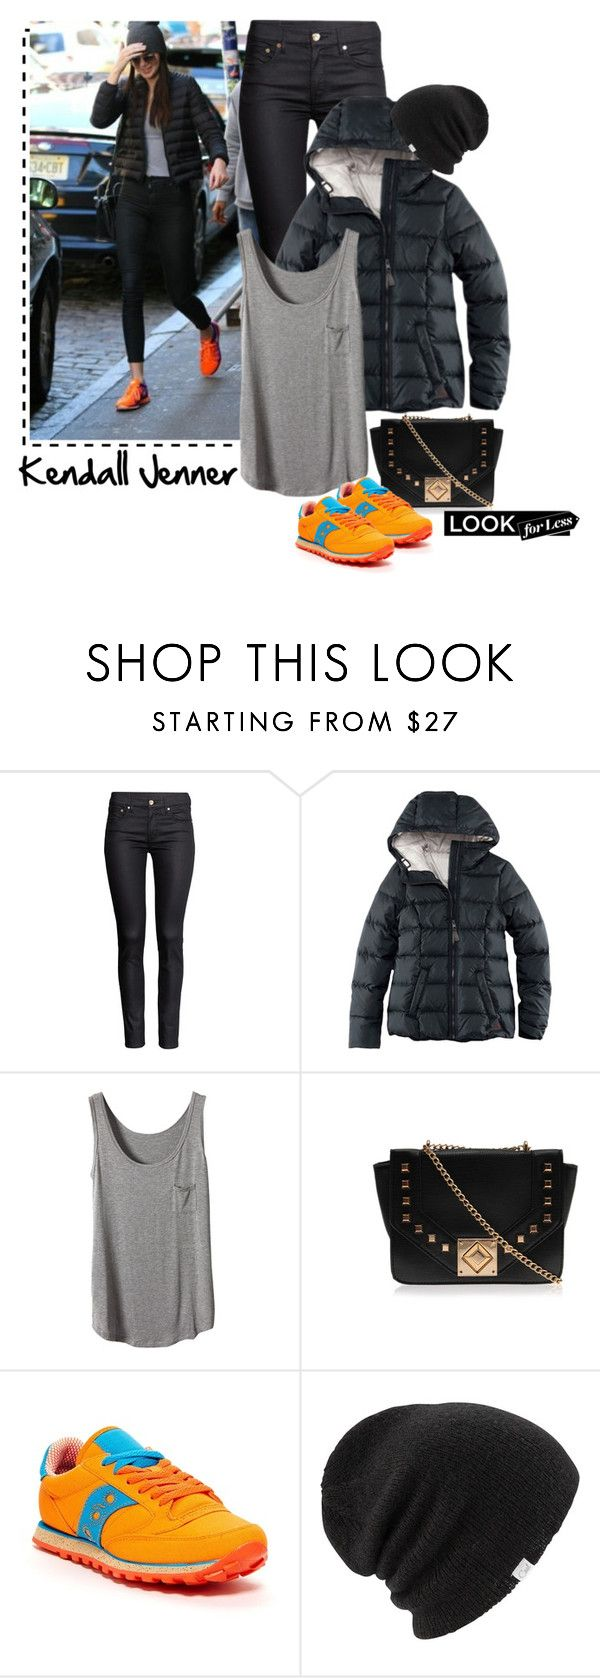 """Kendall Jenner"" by ecem1 ❤ liked on Polyvore featuring H&M, Carvela Kurt Geiger, Saucony and Coal"